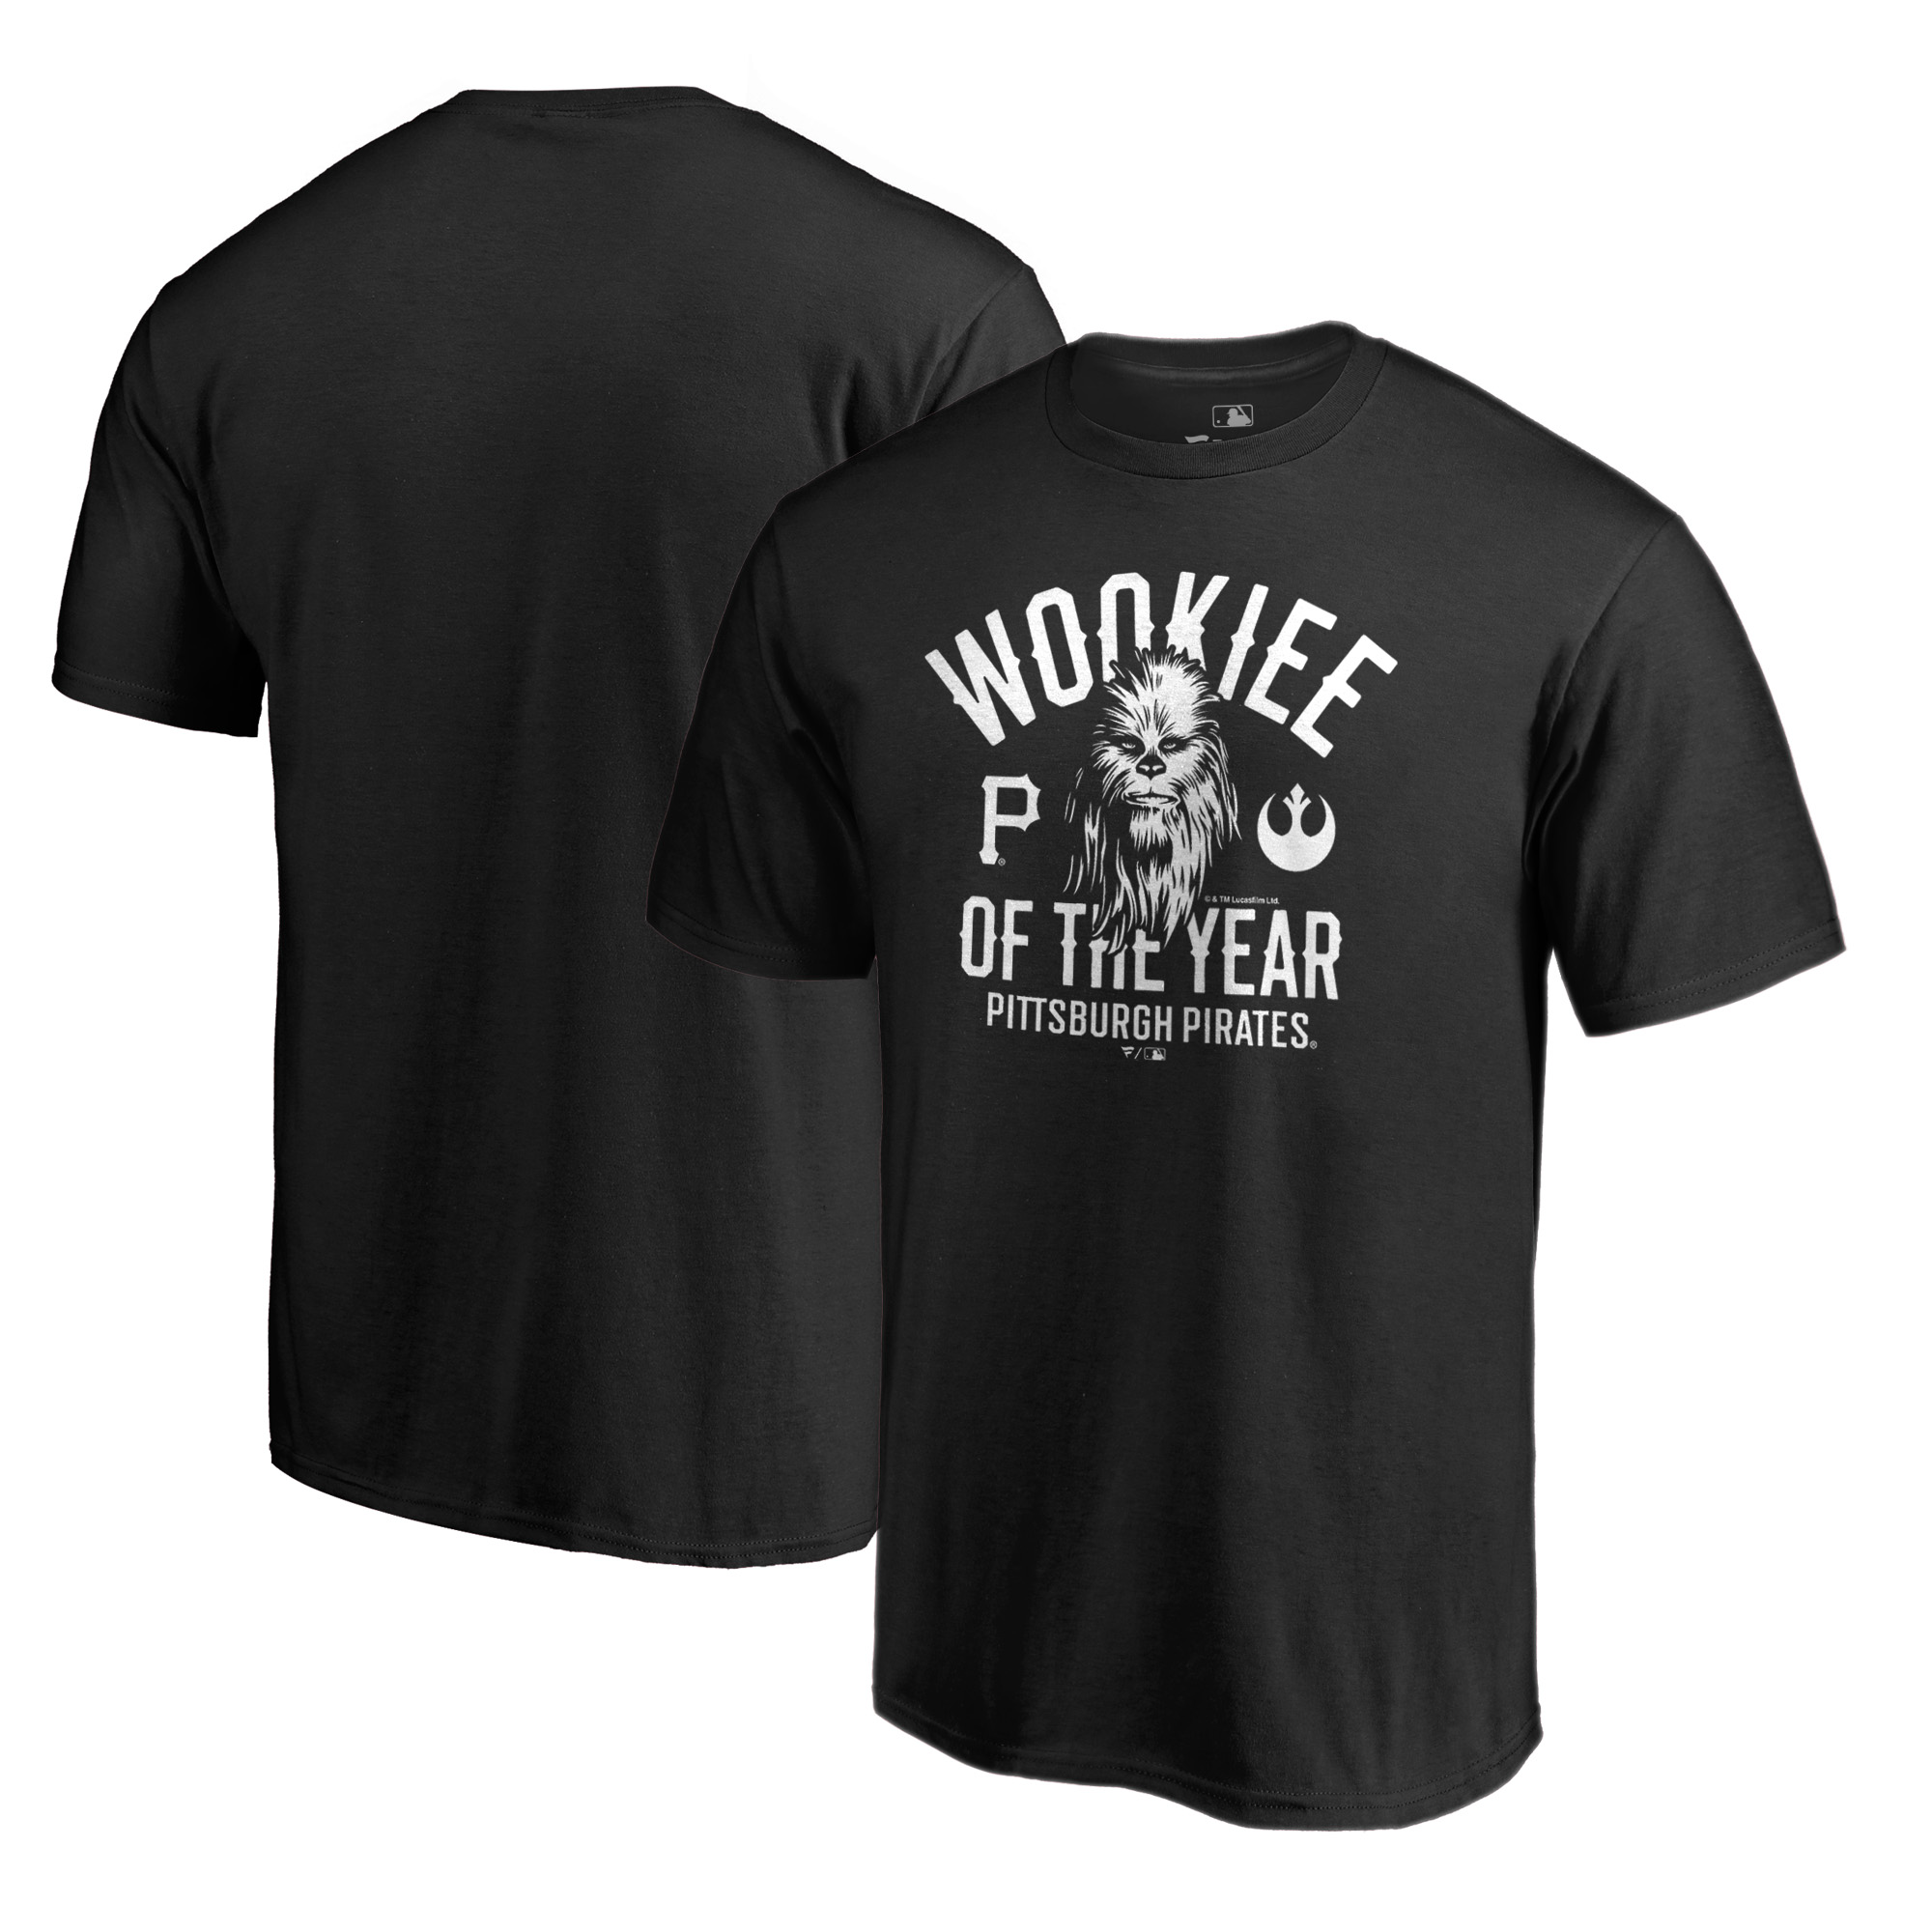 Pittsburgh Pirates Fanatics Branded Star Wars Wookiee Of The Year T-Shirt - Black